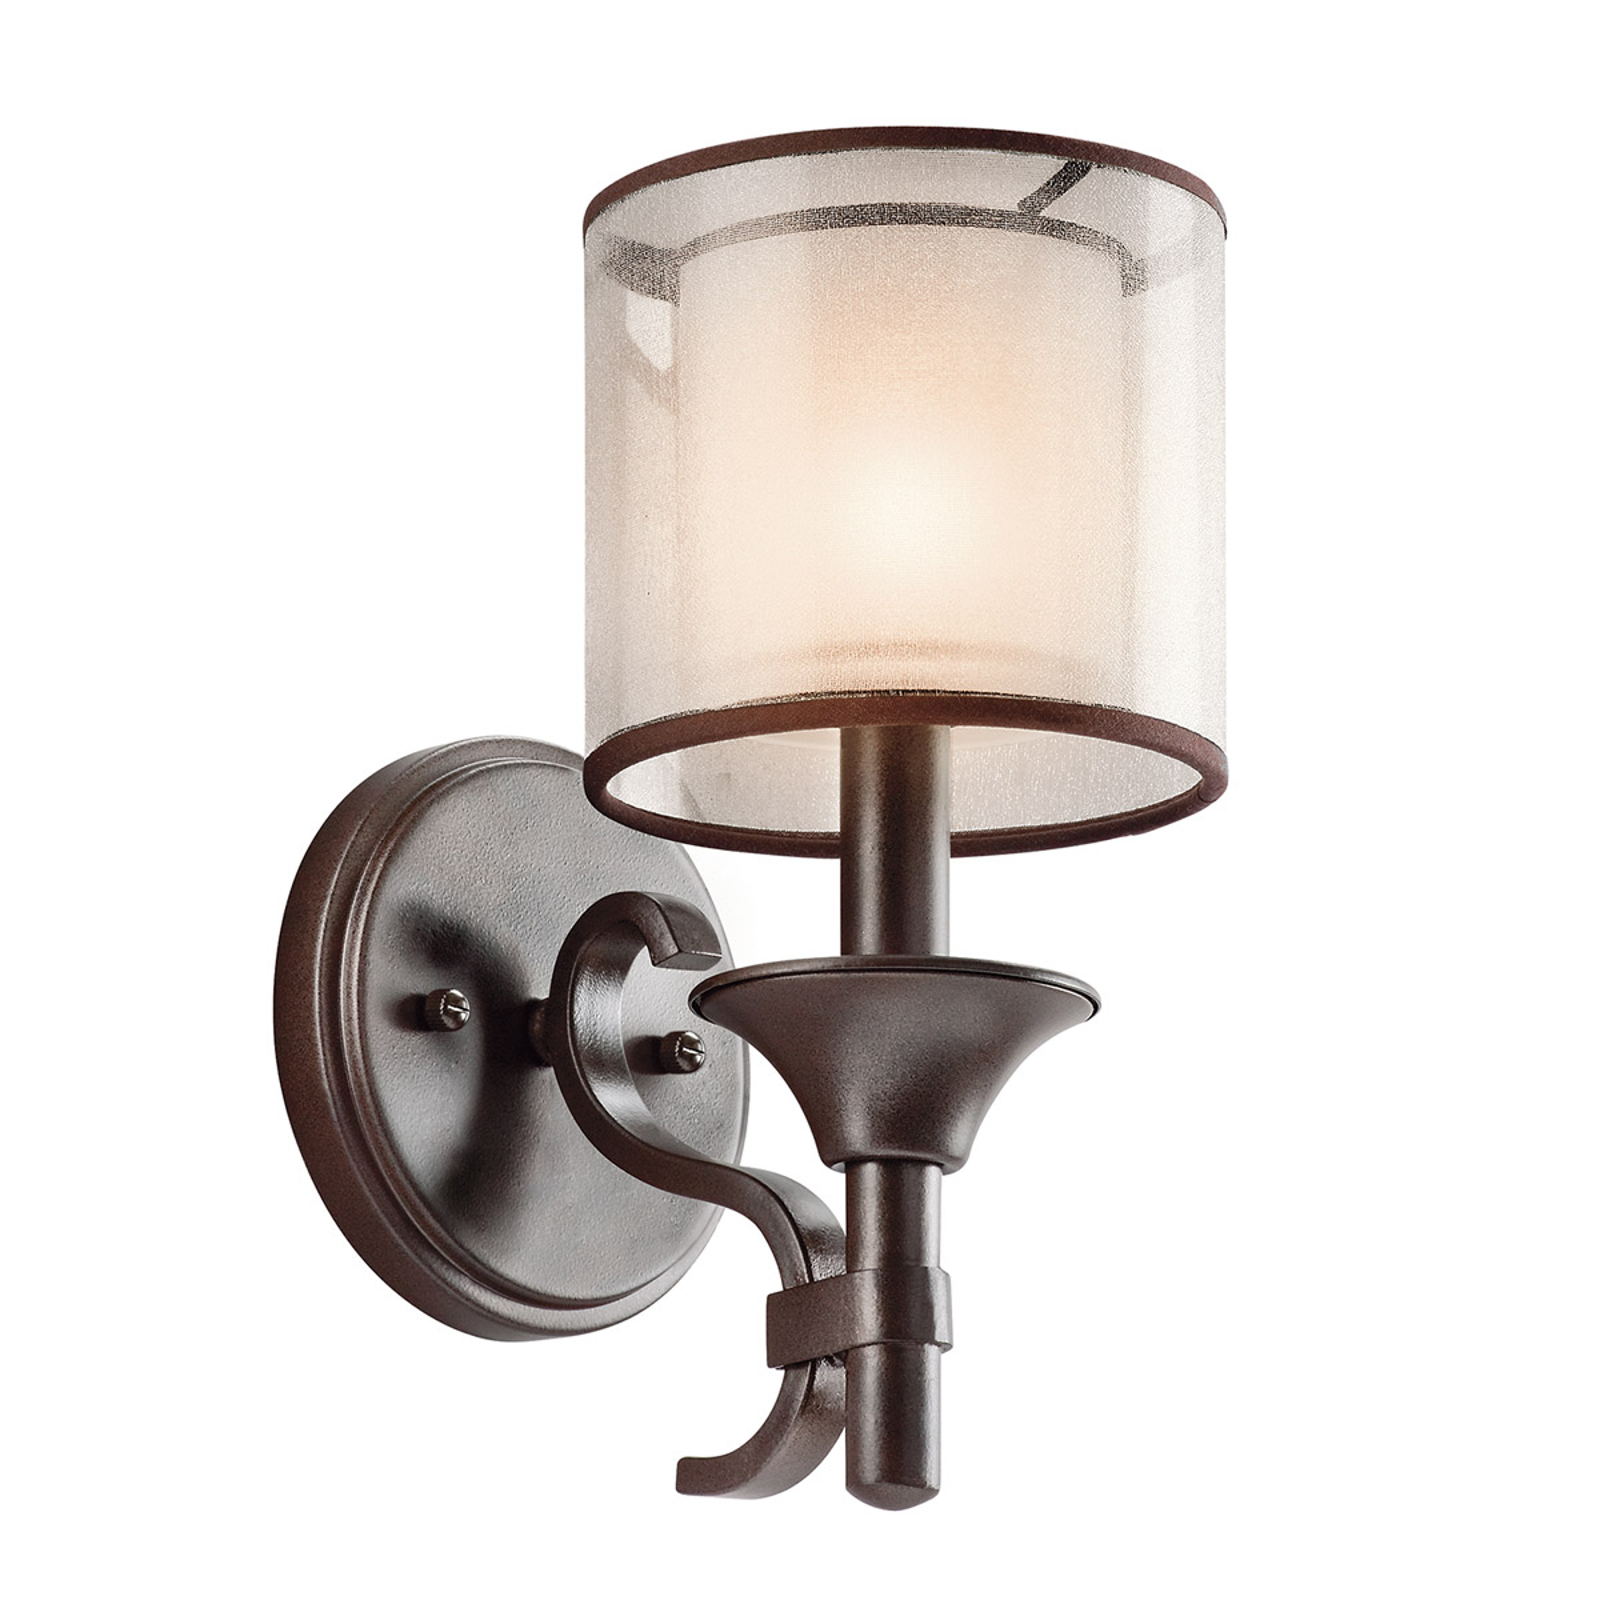 Attractively-designed wall light Lacey_3048287_1